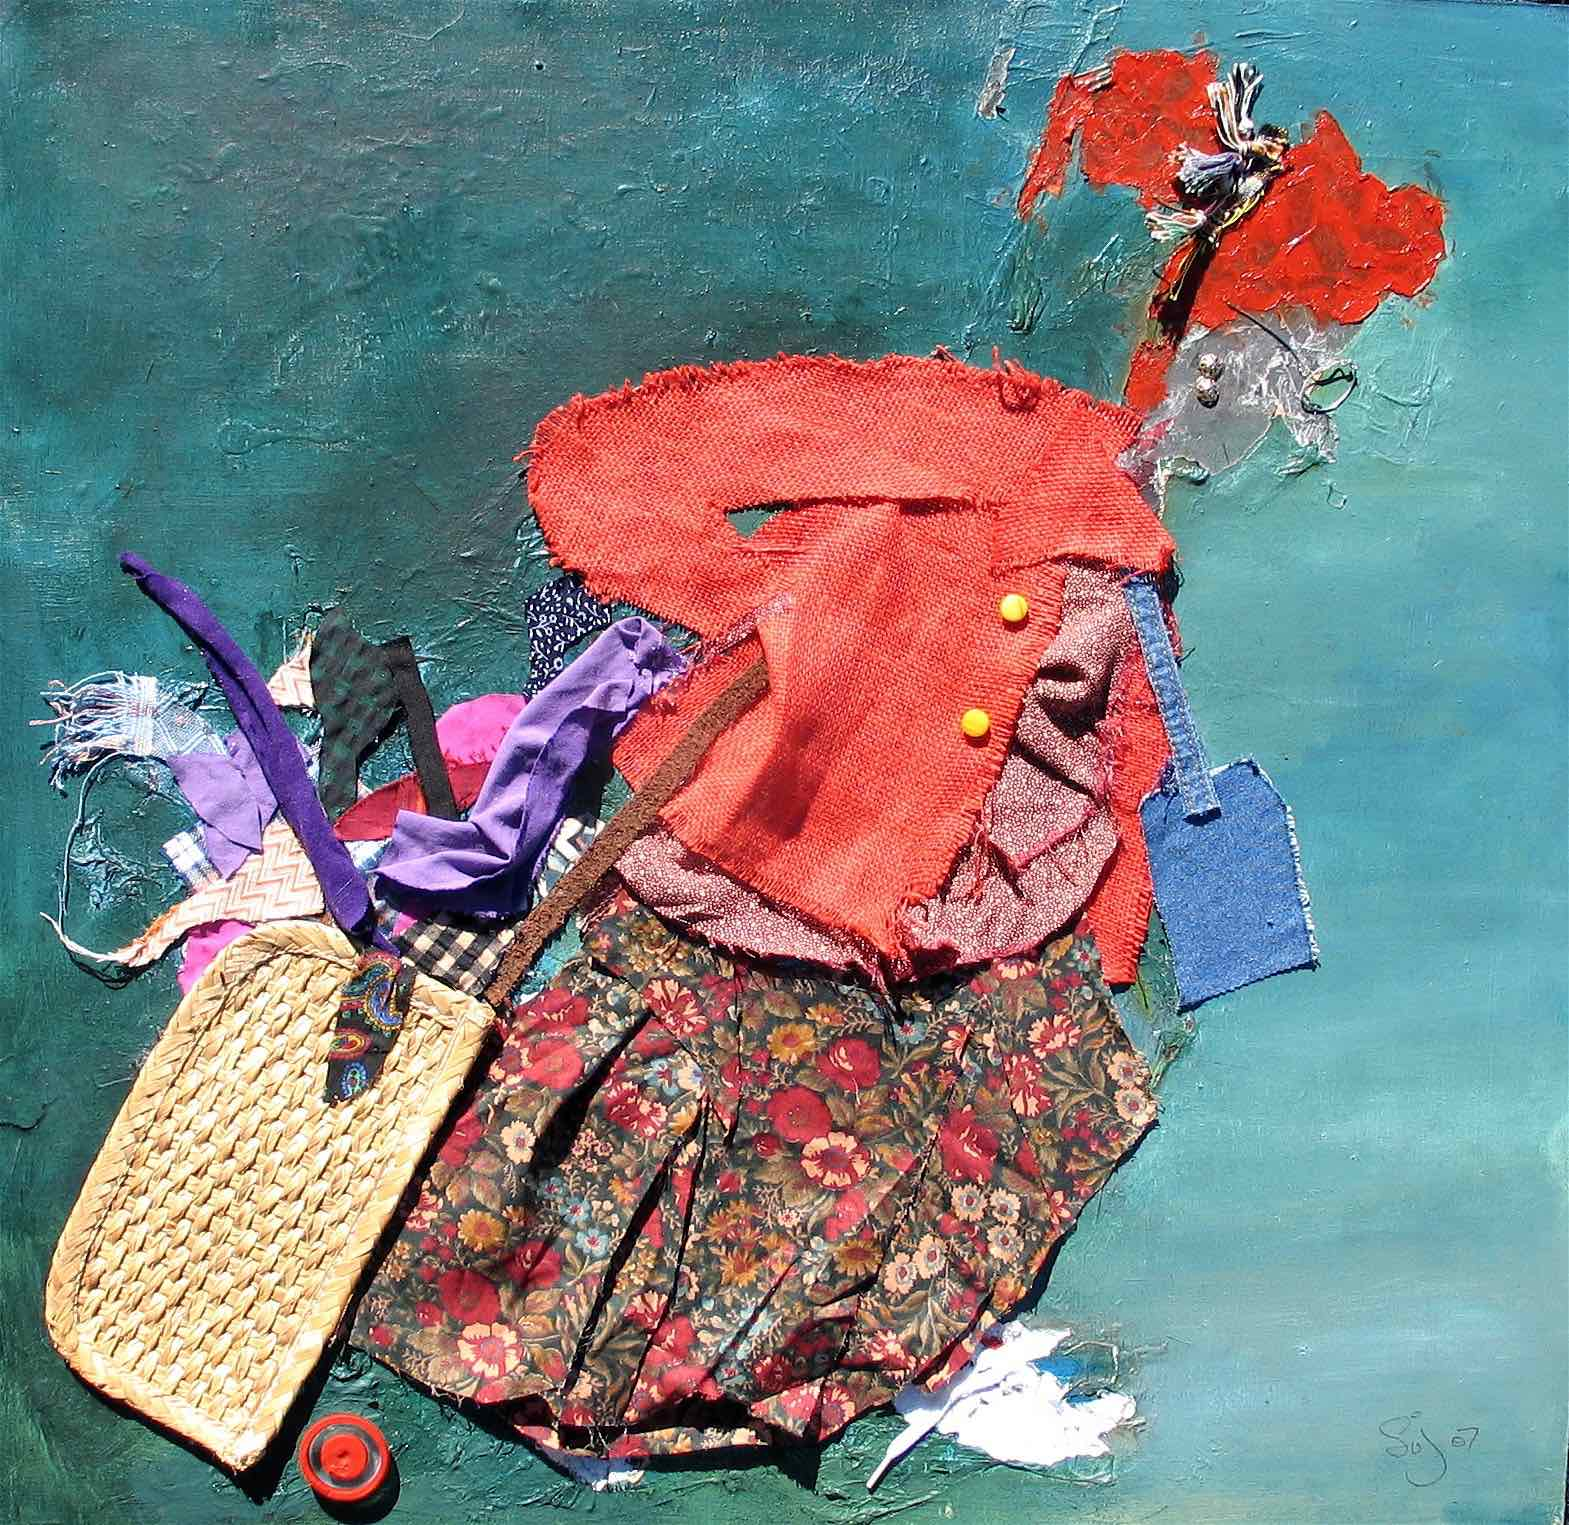 The Bag Lady : 60 X 60 cm oil and collage on board